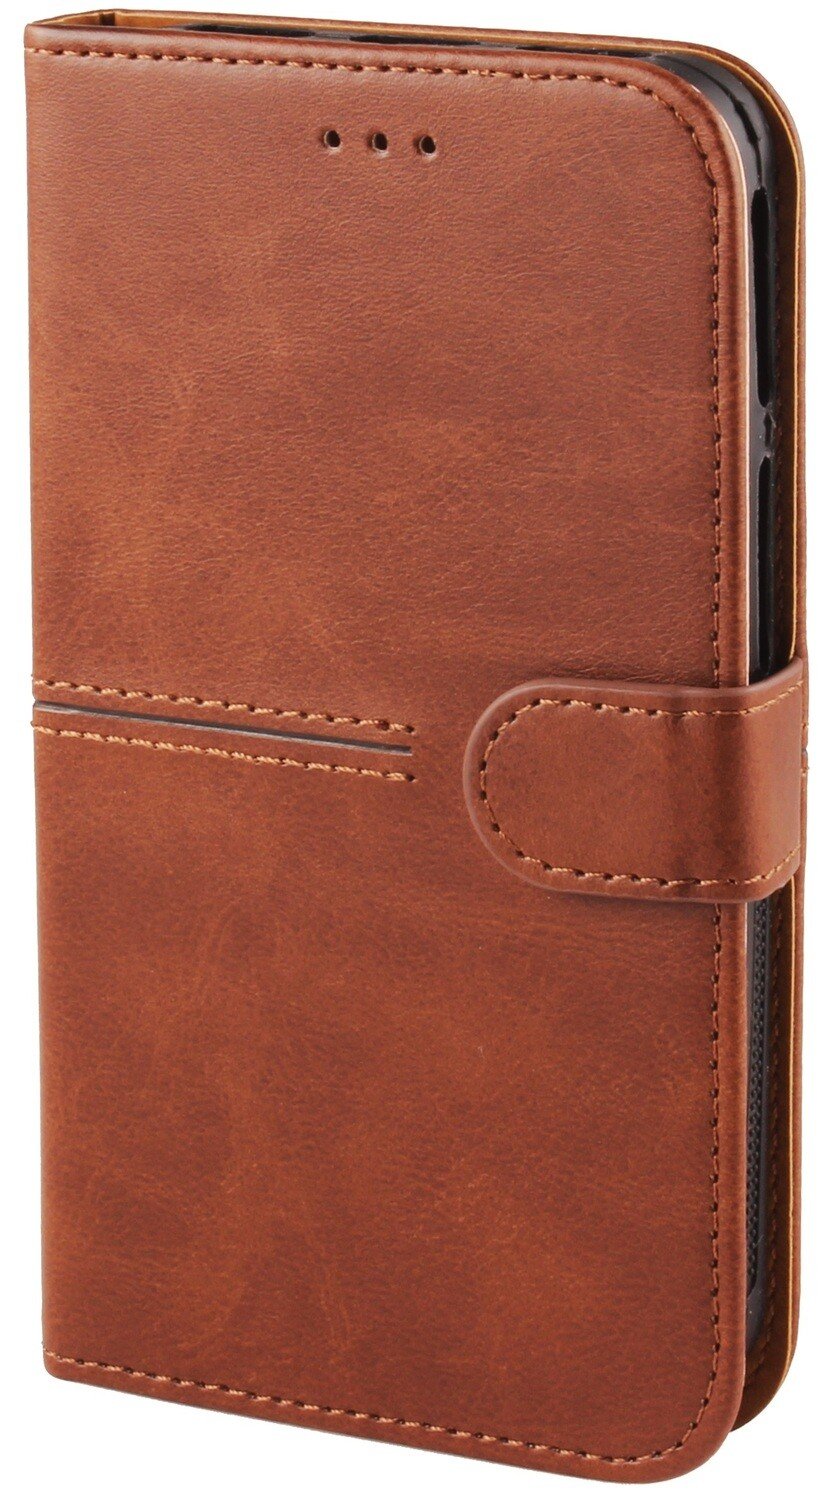 Leather Style Multiple Fitting Phone Case with Adjustable & Slideable Silicone Lining